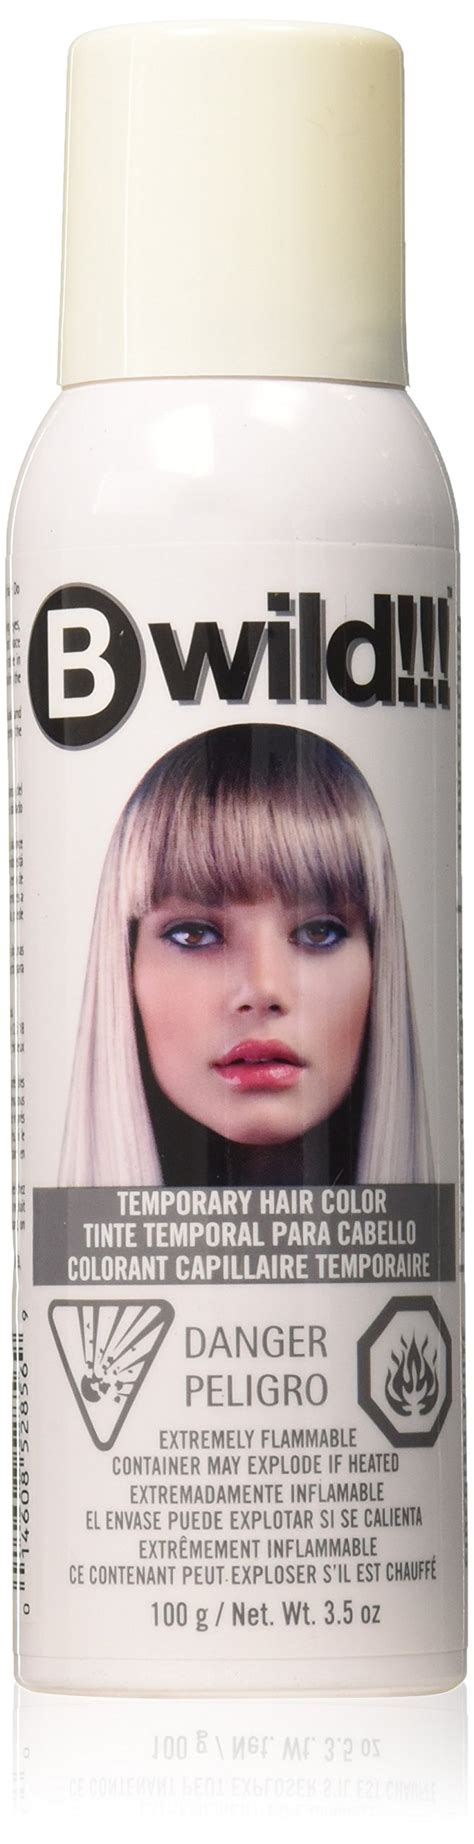 white hair color spray spray on wash out white hair color temporary